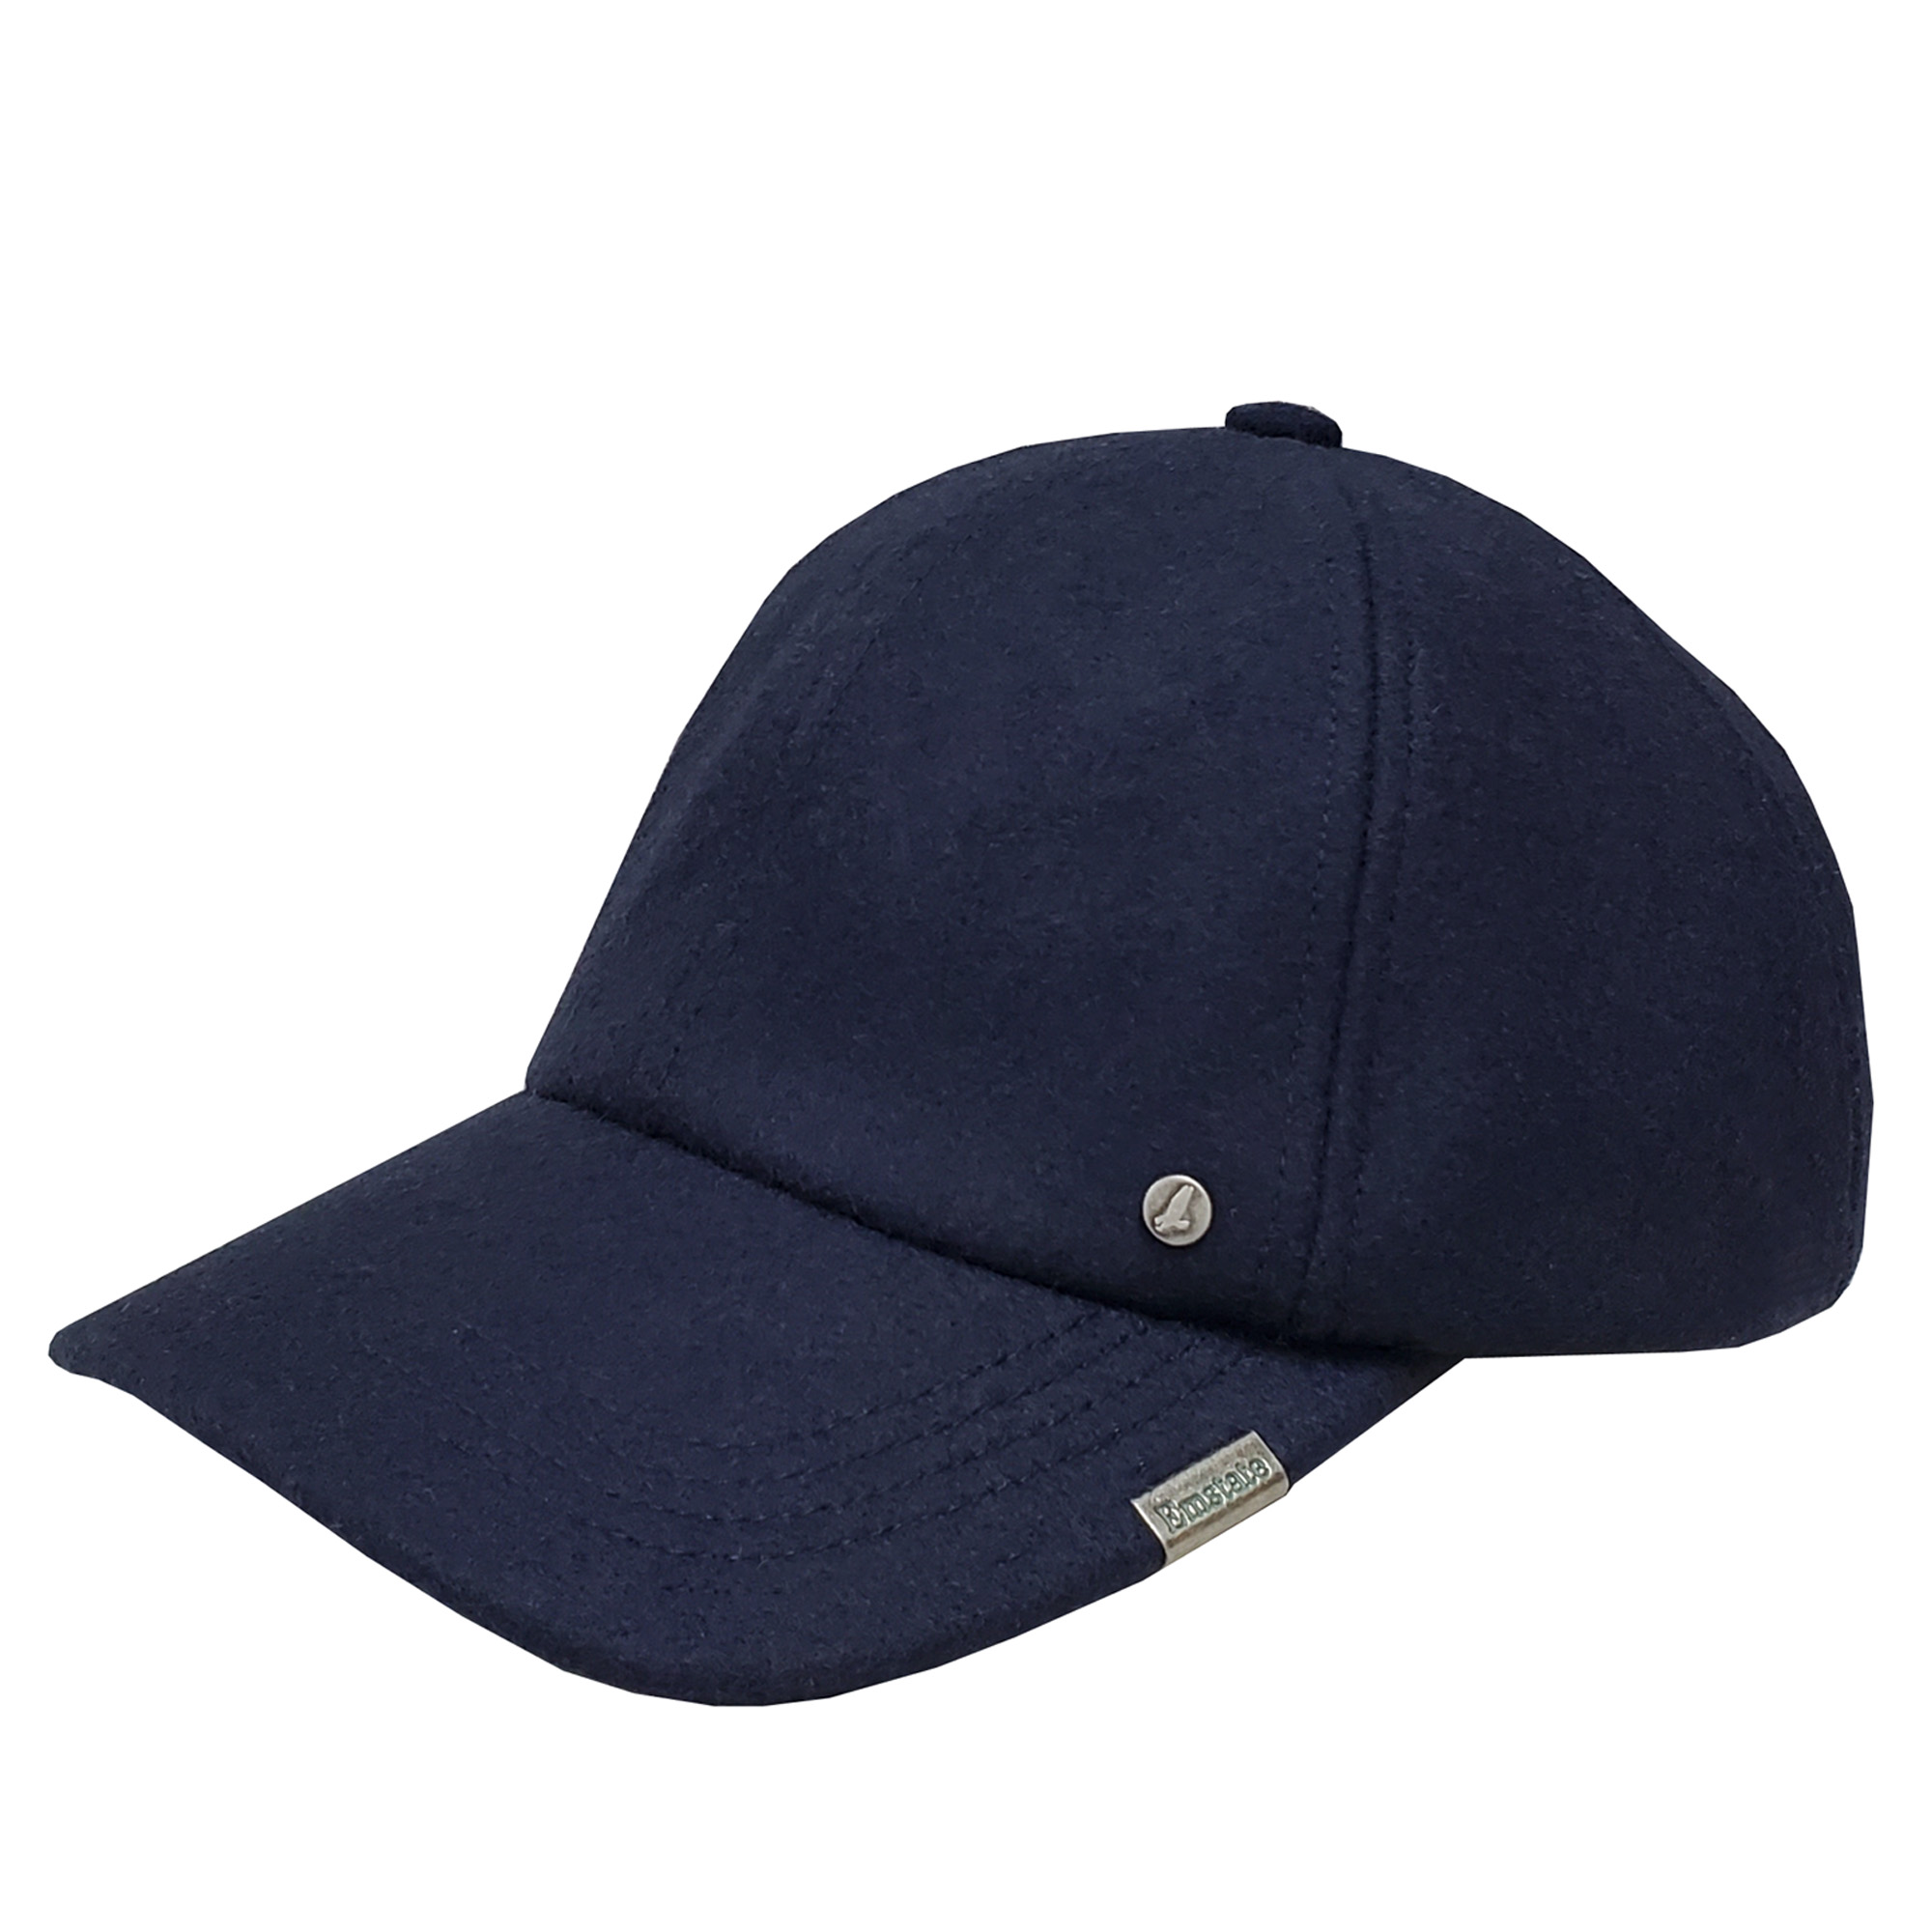 Emstate Navy Melton Wool Baseball Cap